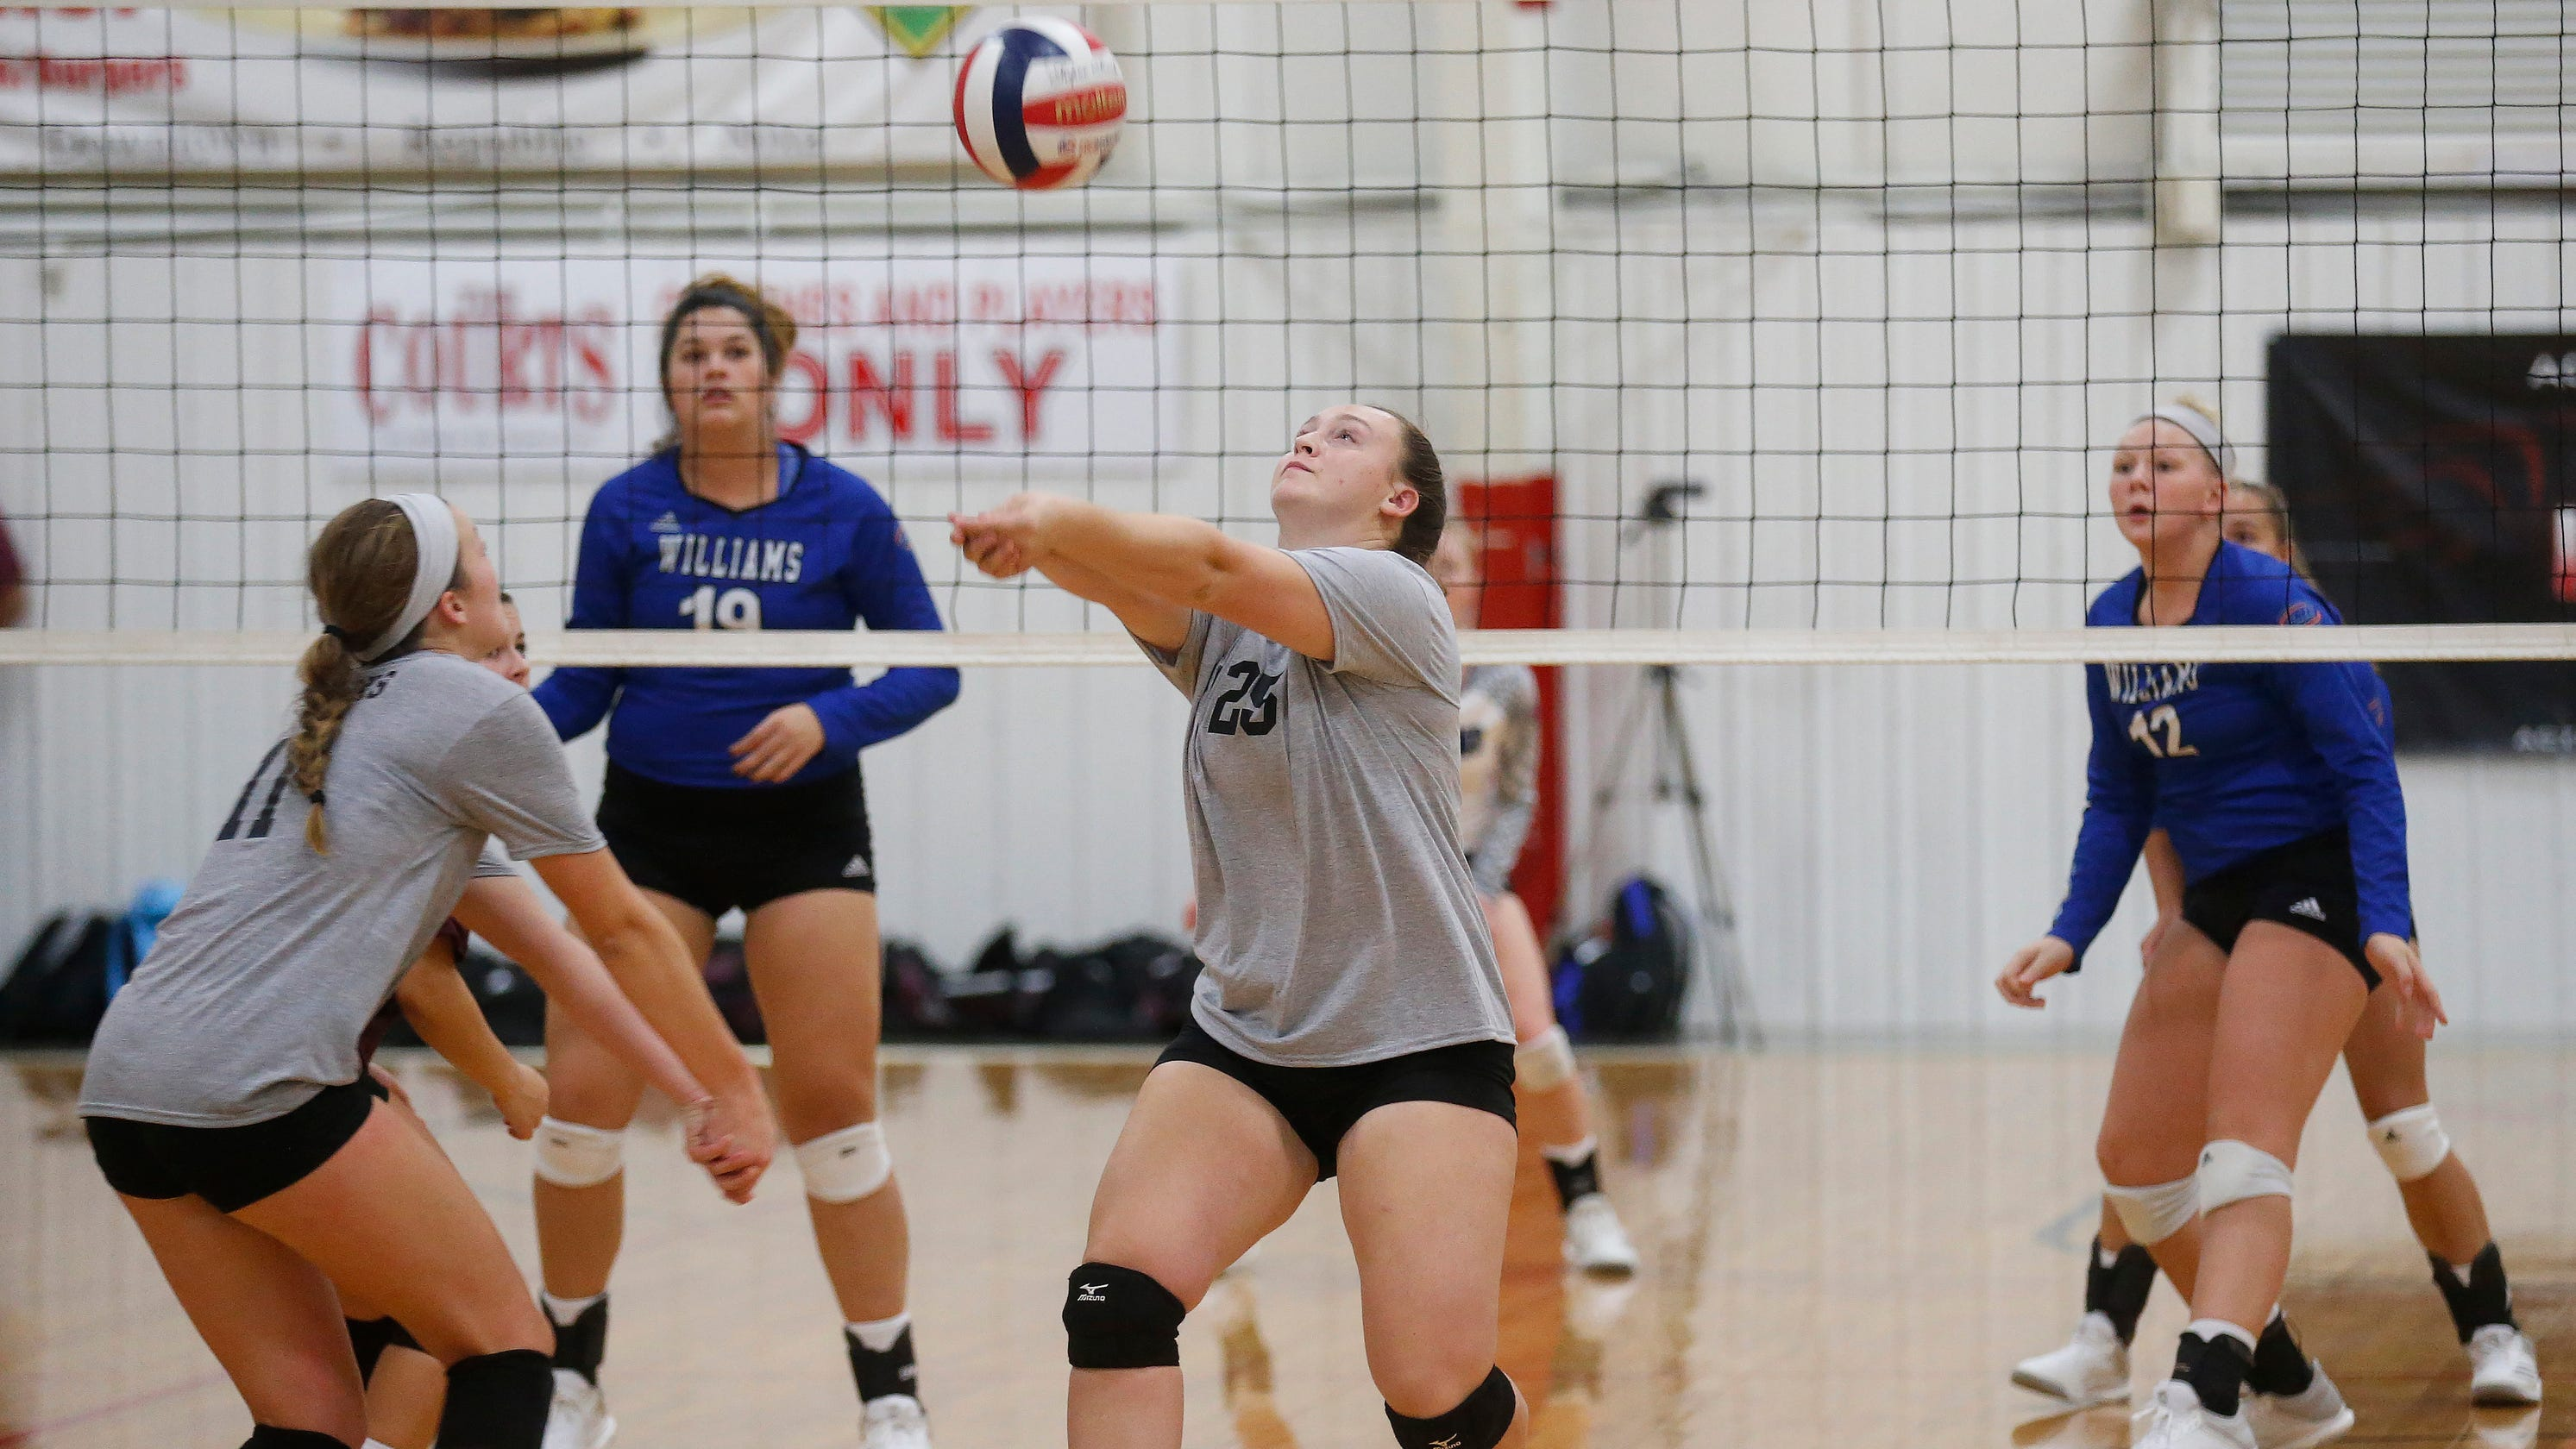 98d9db08d741 College of the Ozarks volleyball team trades in Nike uniforms for gray  T-shirts